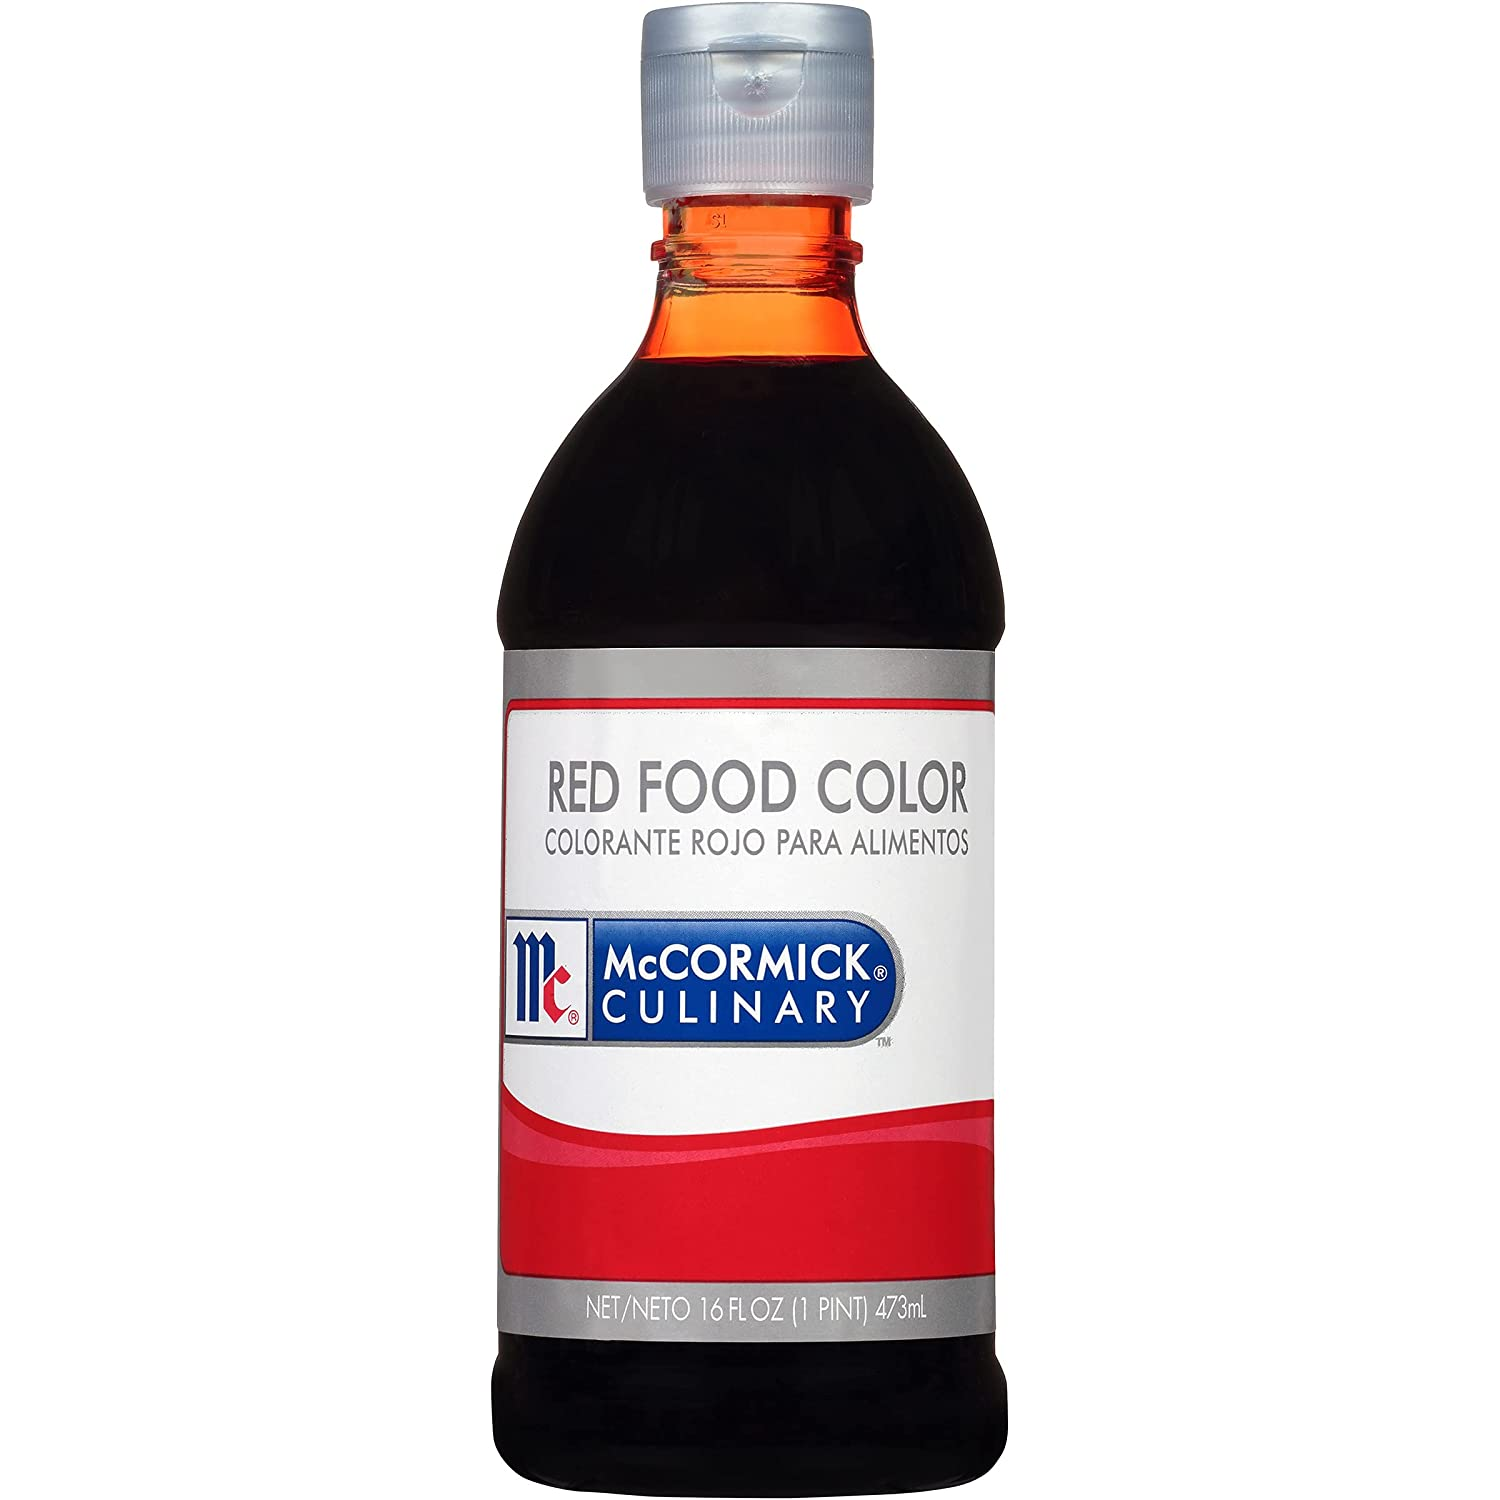 McCormick Culinary Red Food Color, 16 oz